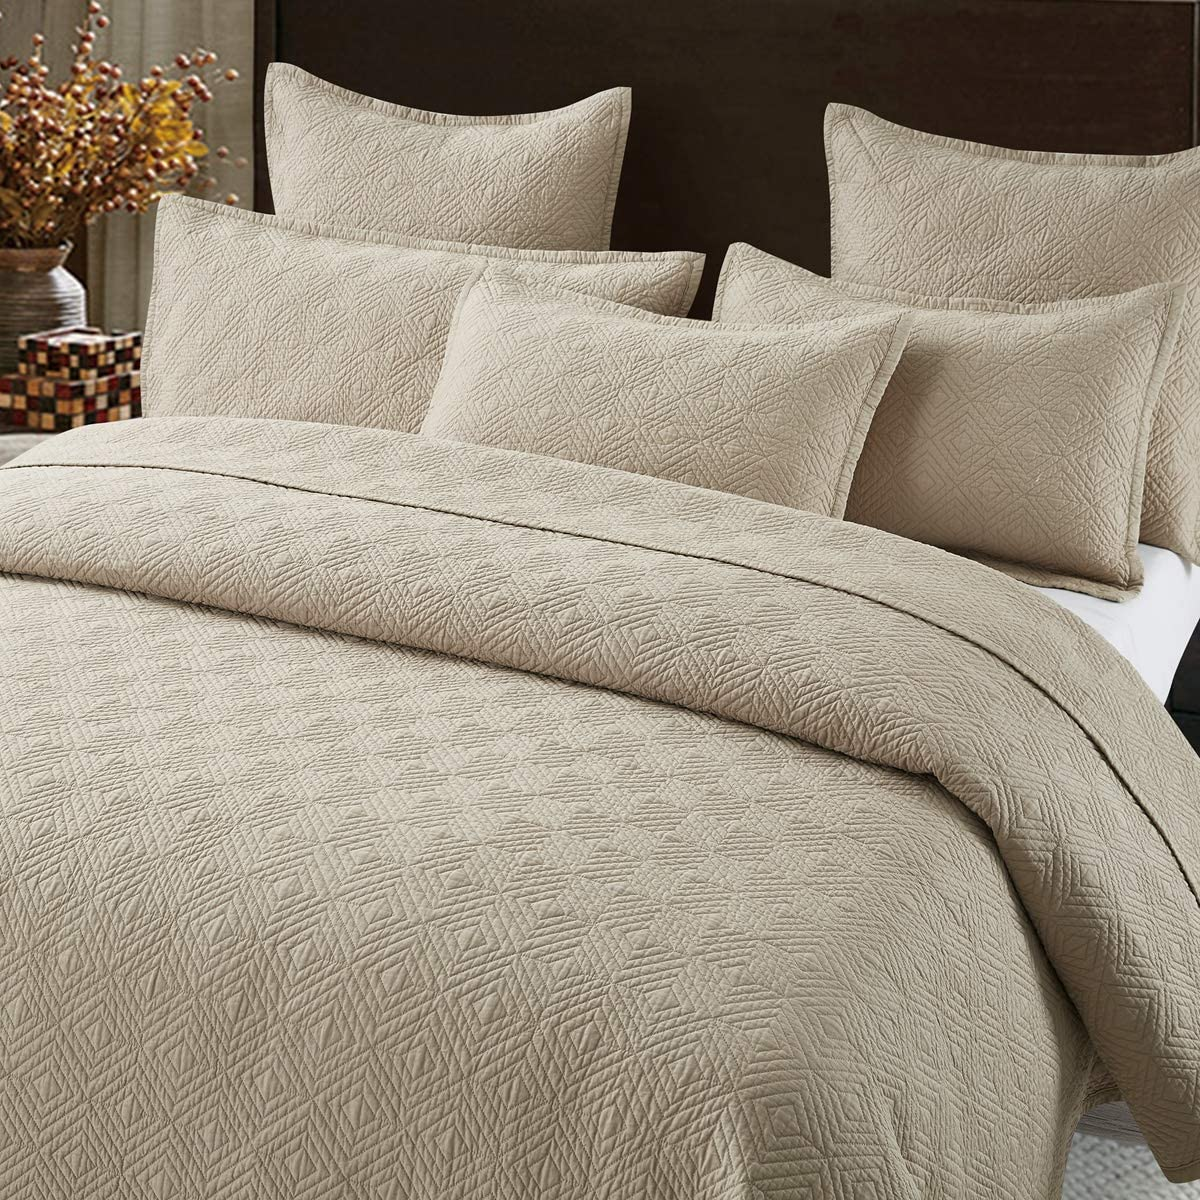 Calla Angel Evelyn Stitch Diamond Pure Cotton Quilted Pillow Sham 26 x 26, Sand, Euro